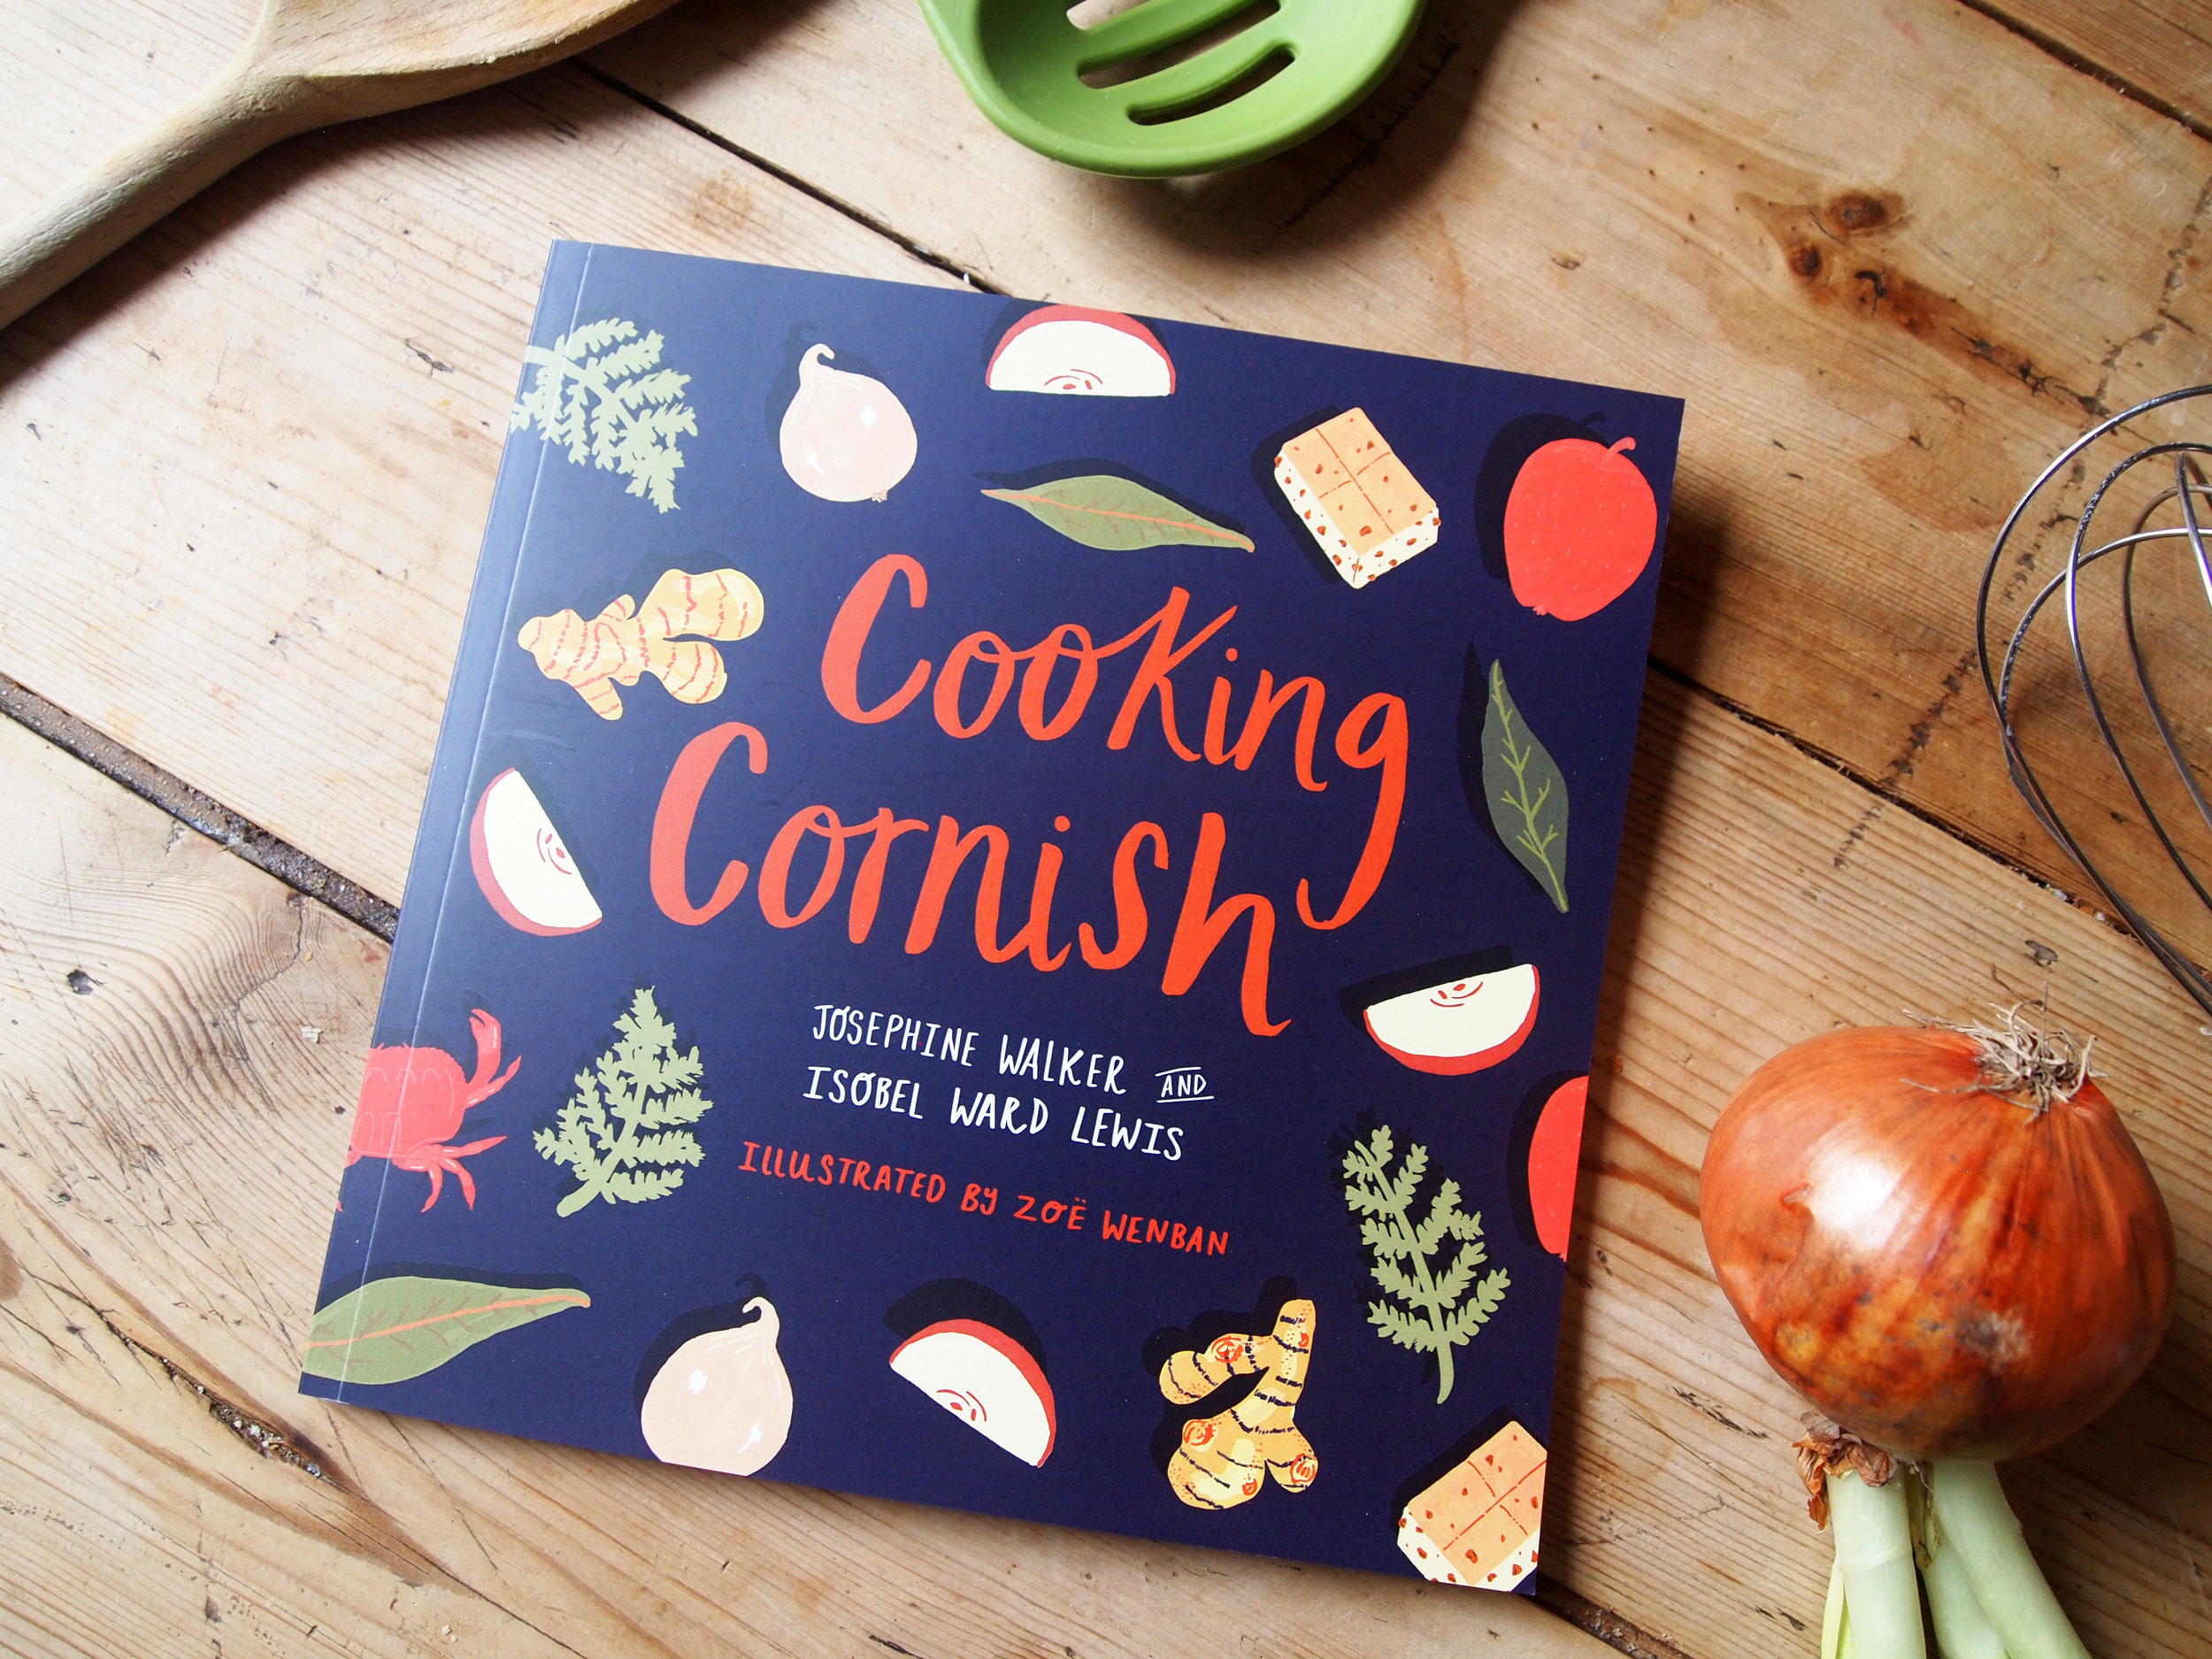 © 1 Cooking_Cornish_Cover_Zoe Wenban_2018.jpg